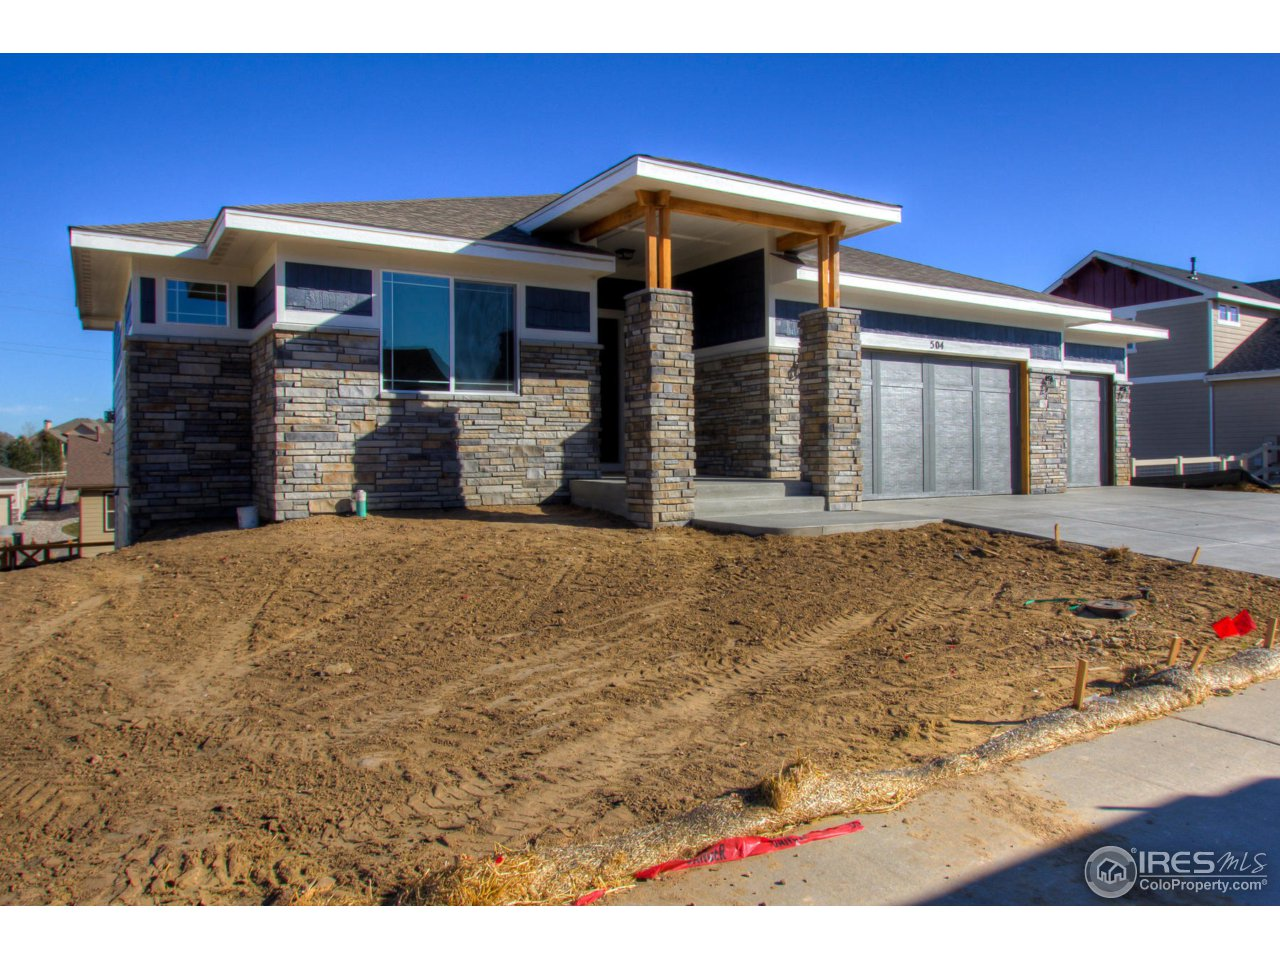 504 Sage Ave, Greeley CO 80634